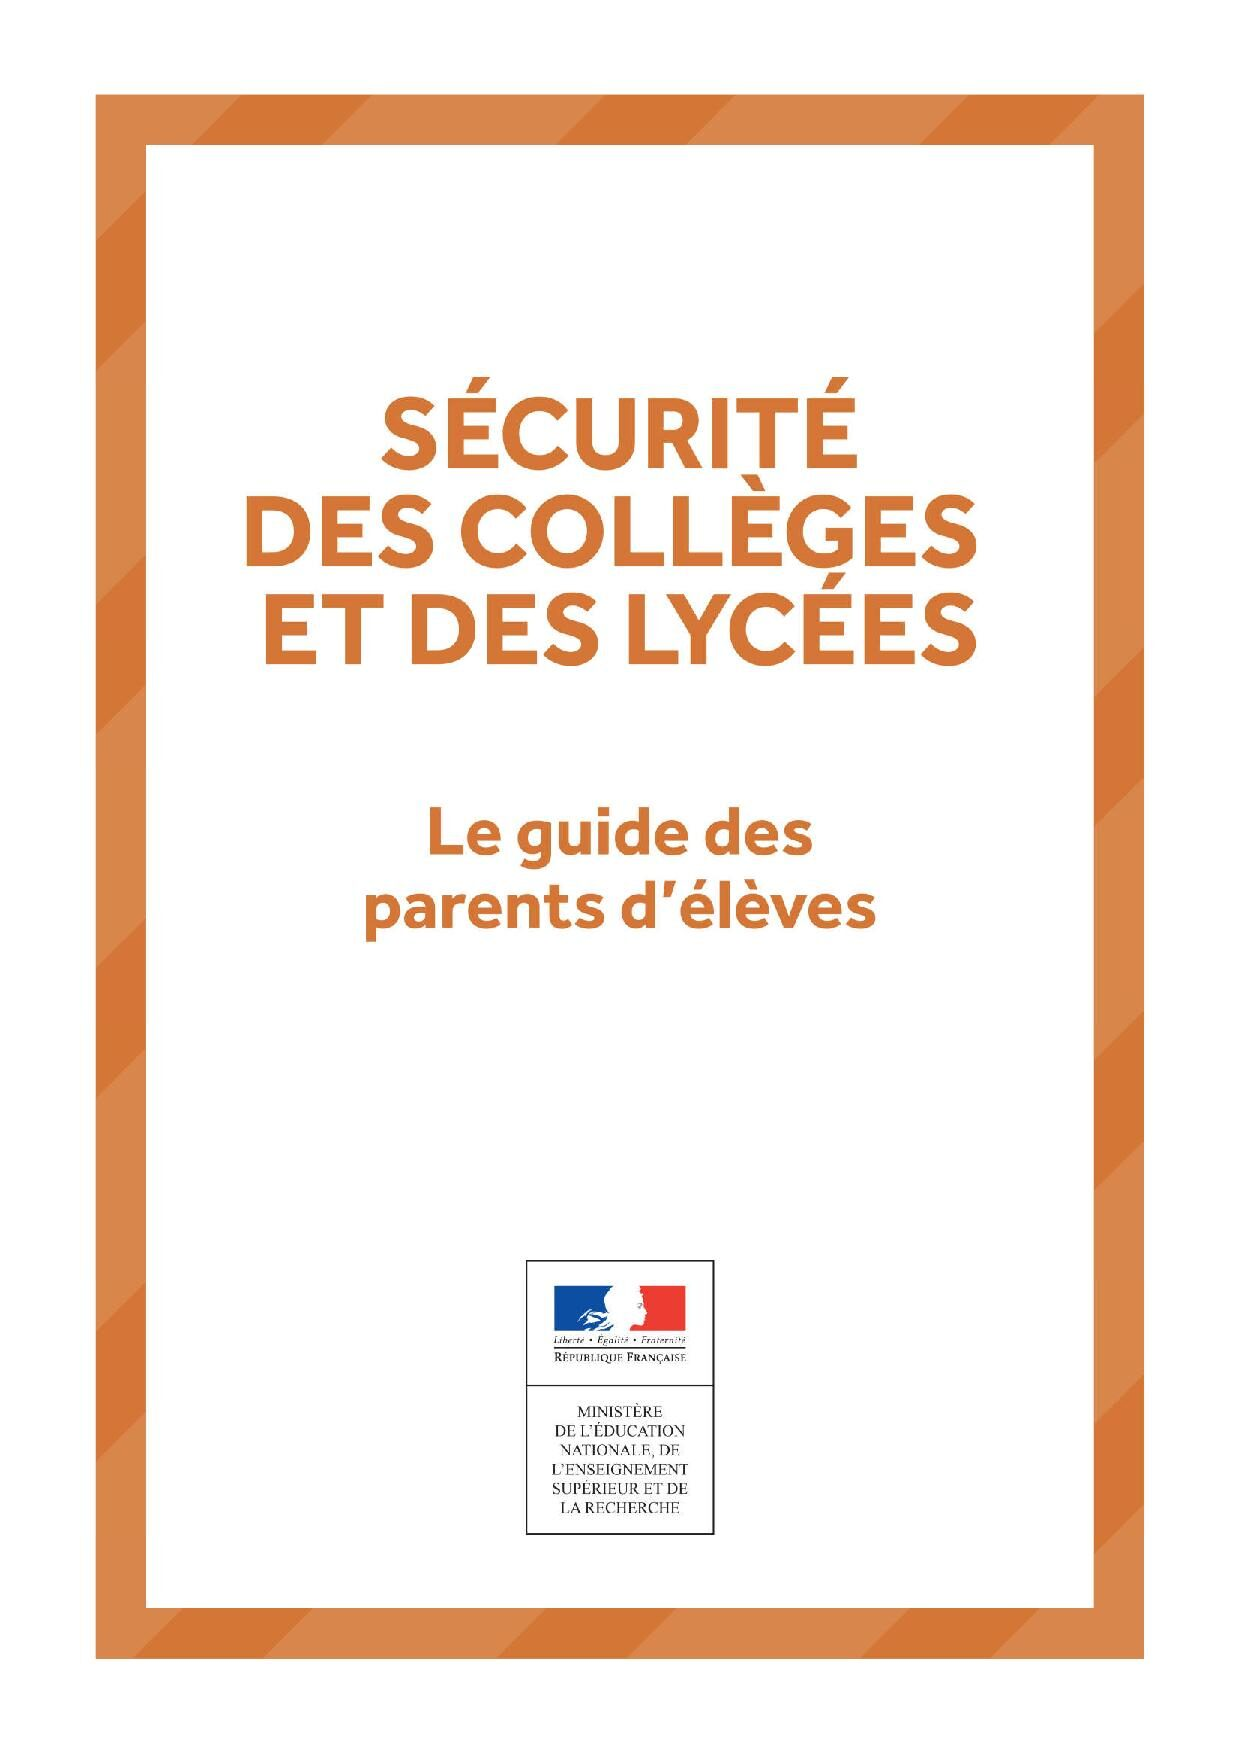 IMAGE securite_guide_college_parents_web_616224-page-001.jpg